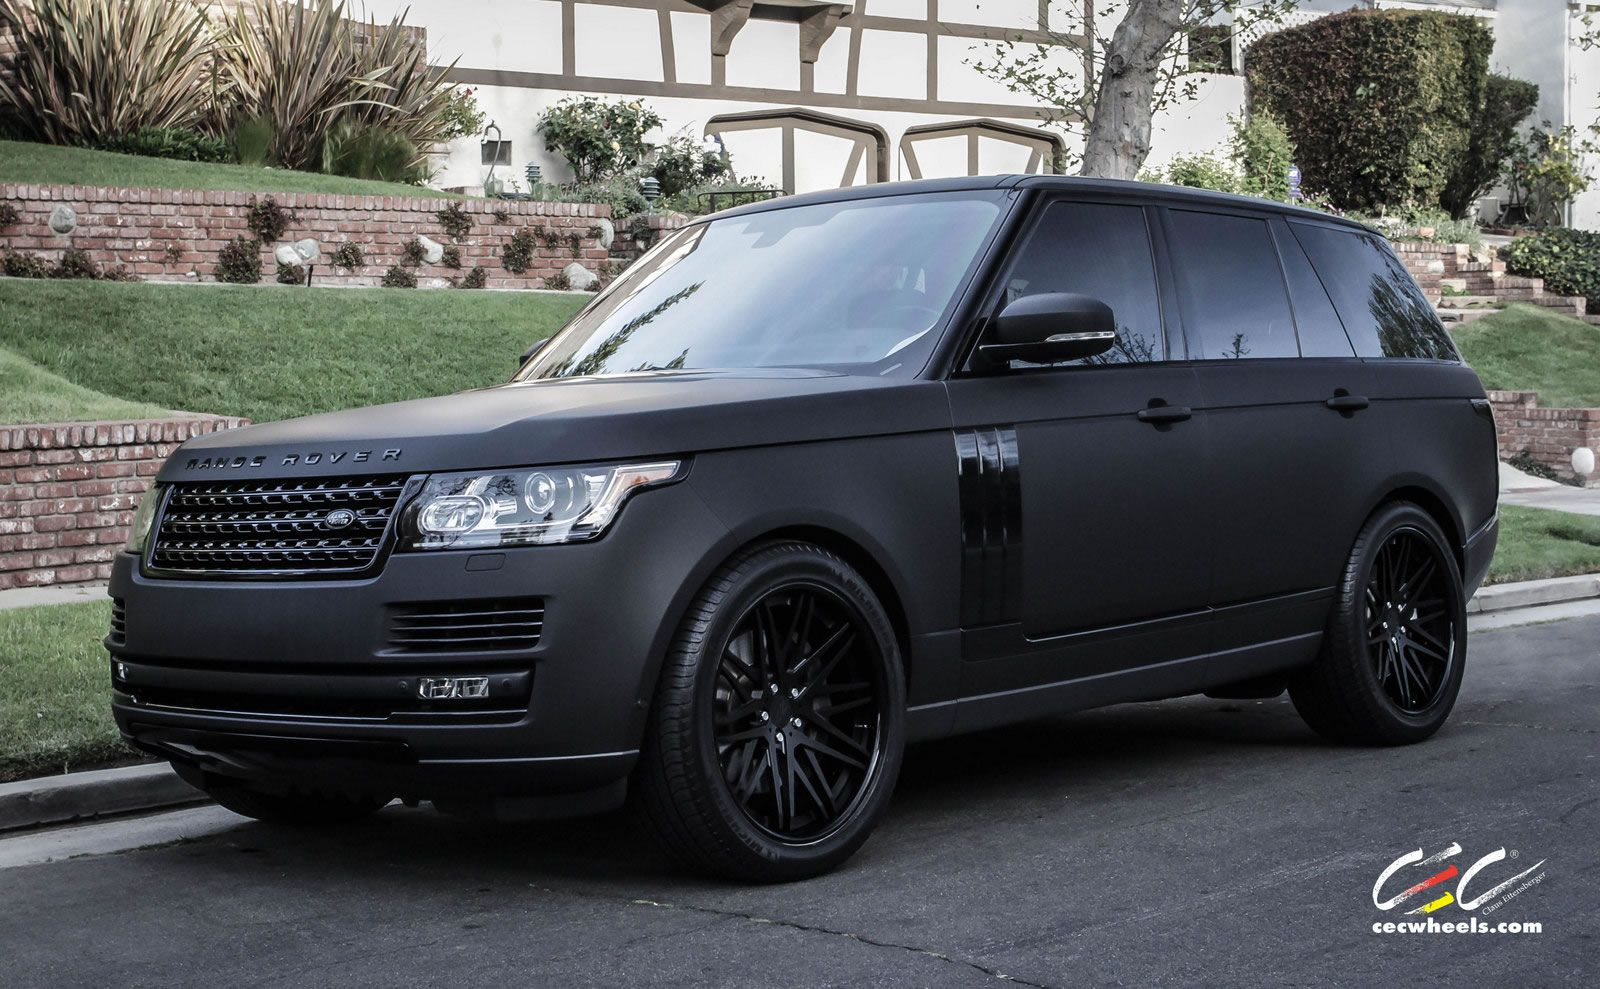 Matte Range Rover >> Range Rover Matt Black Google Zoeken The Whip Pinterest